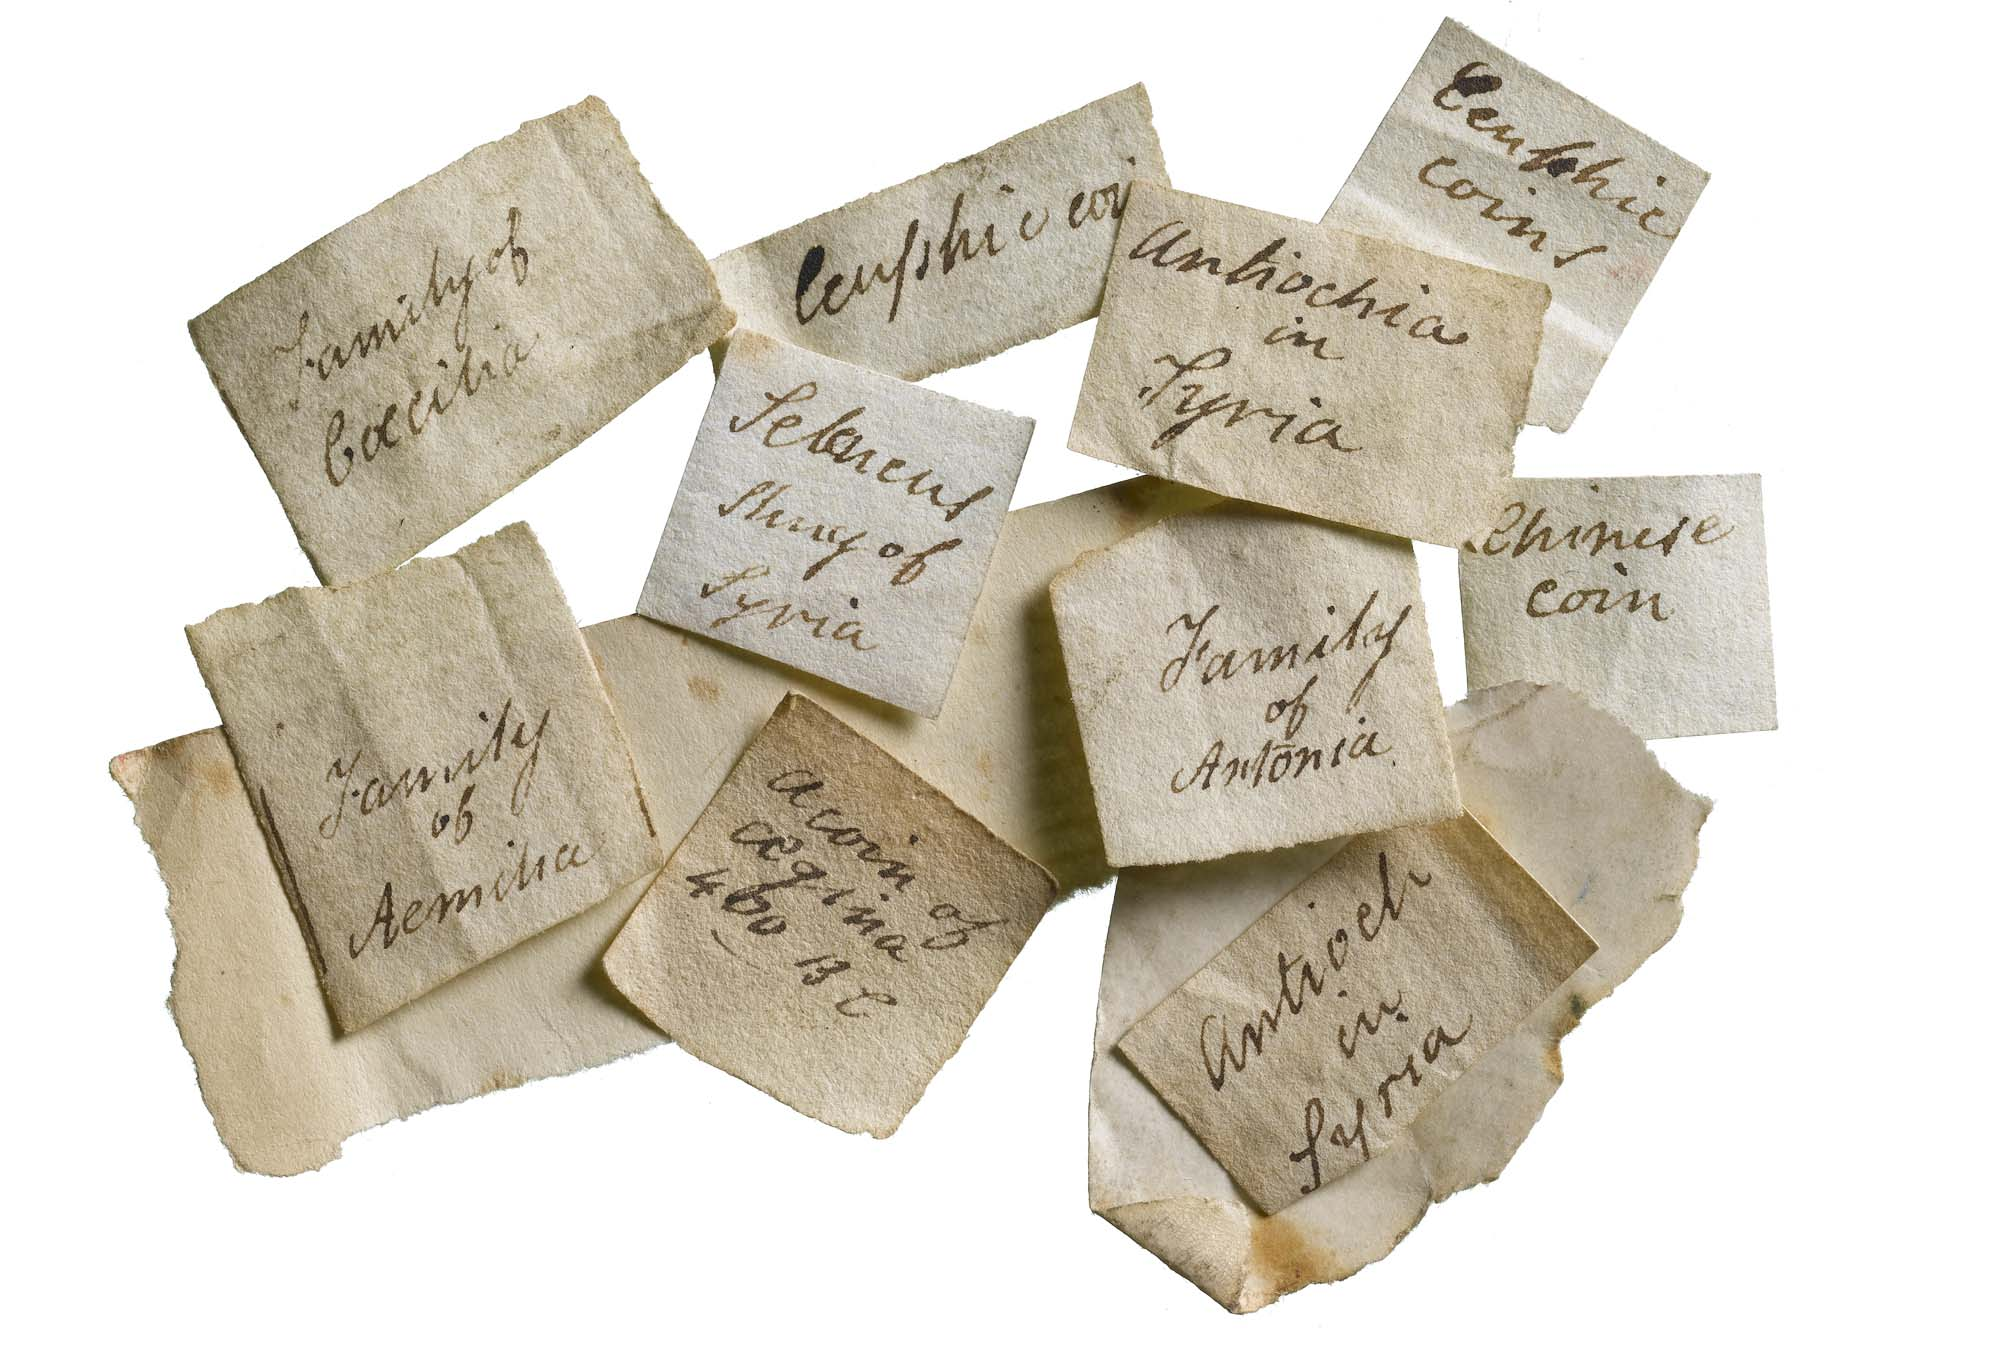 a photo of a group of small pieces of paper with handwriting on them